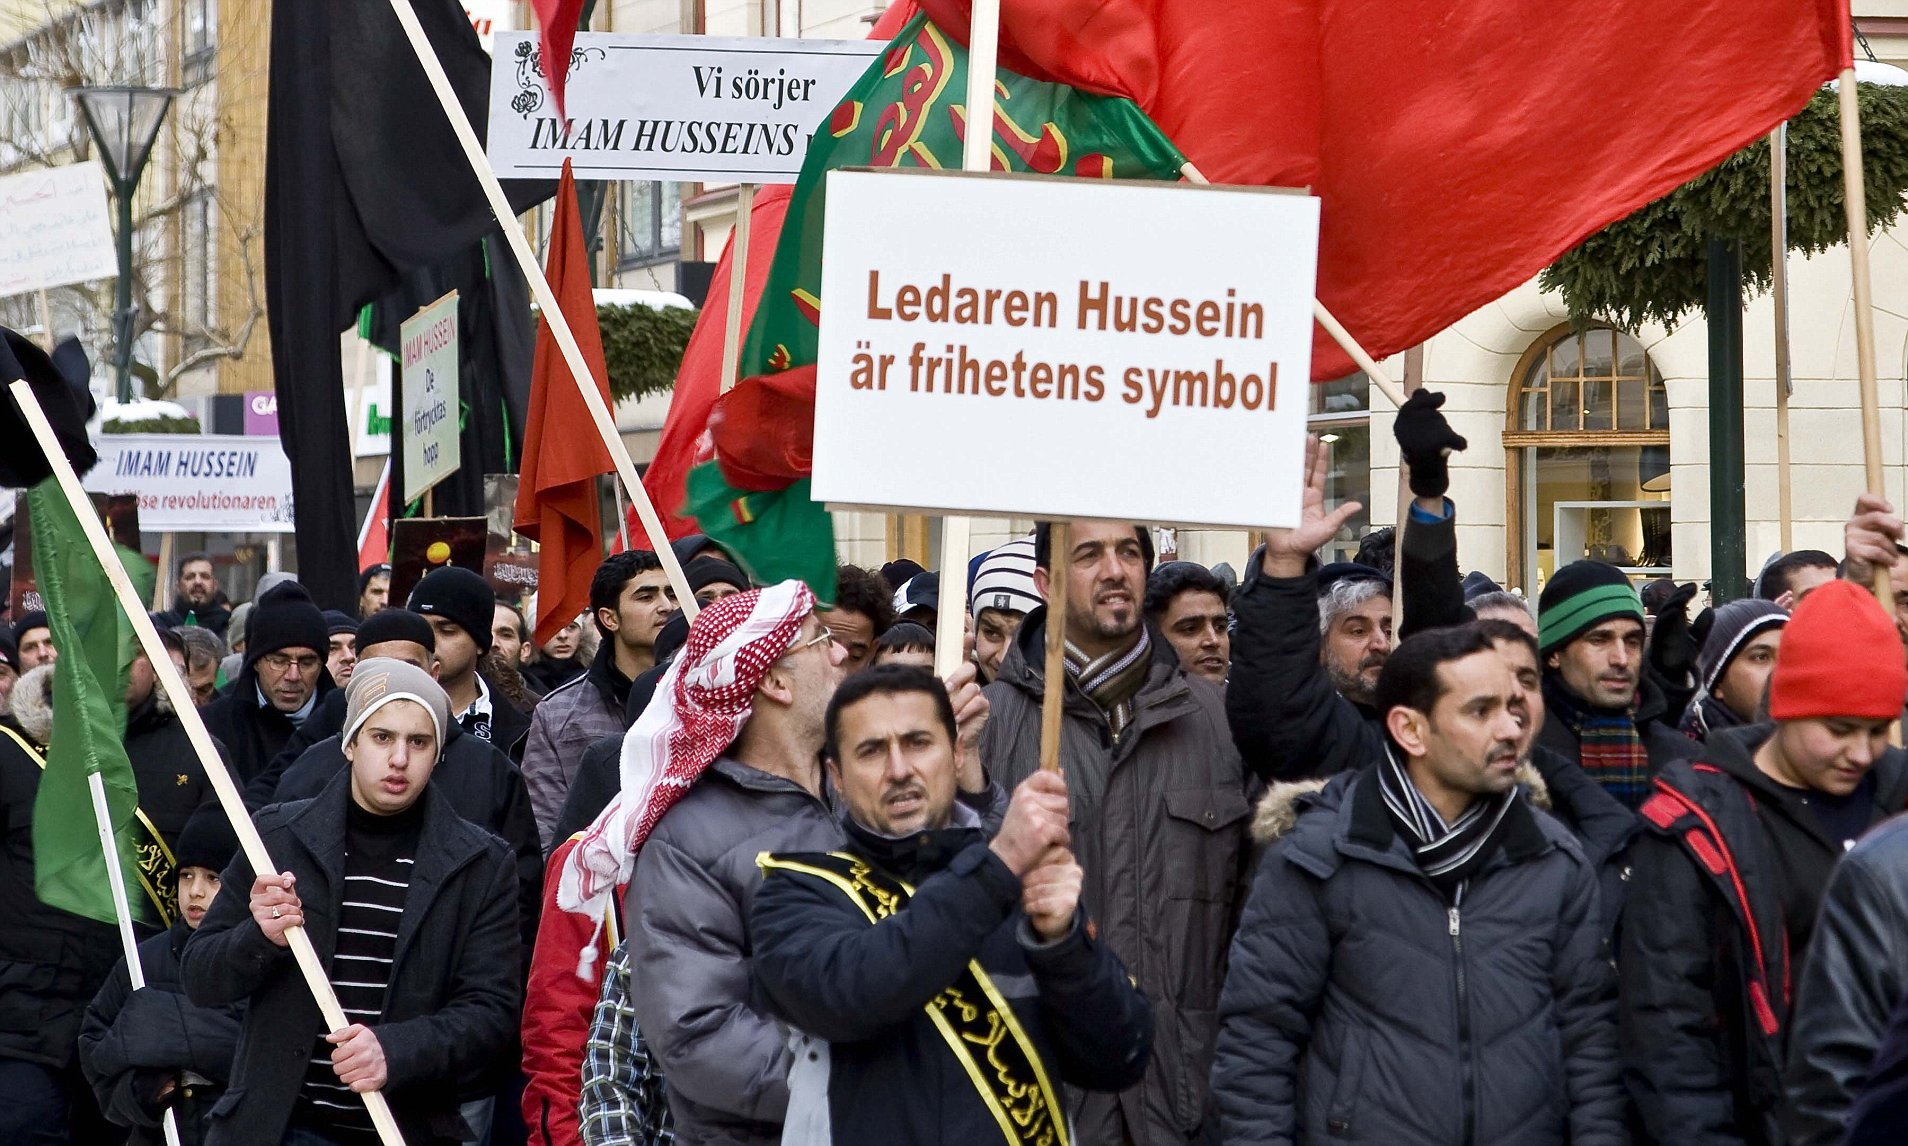 The Islamists of Sweden, slowly turning Sweden into a